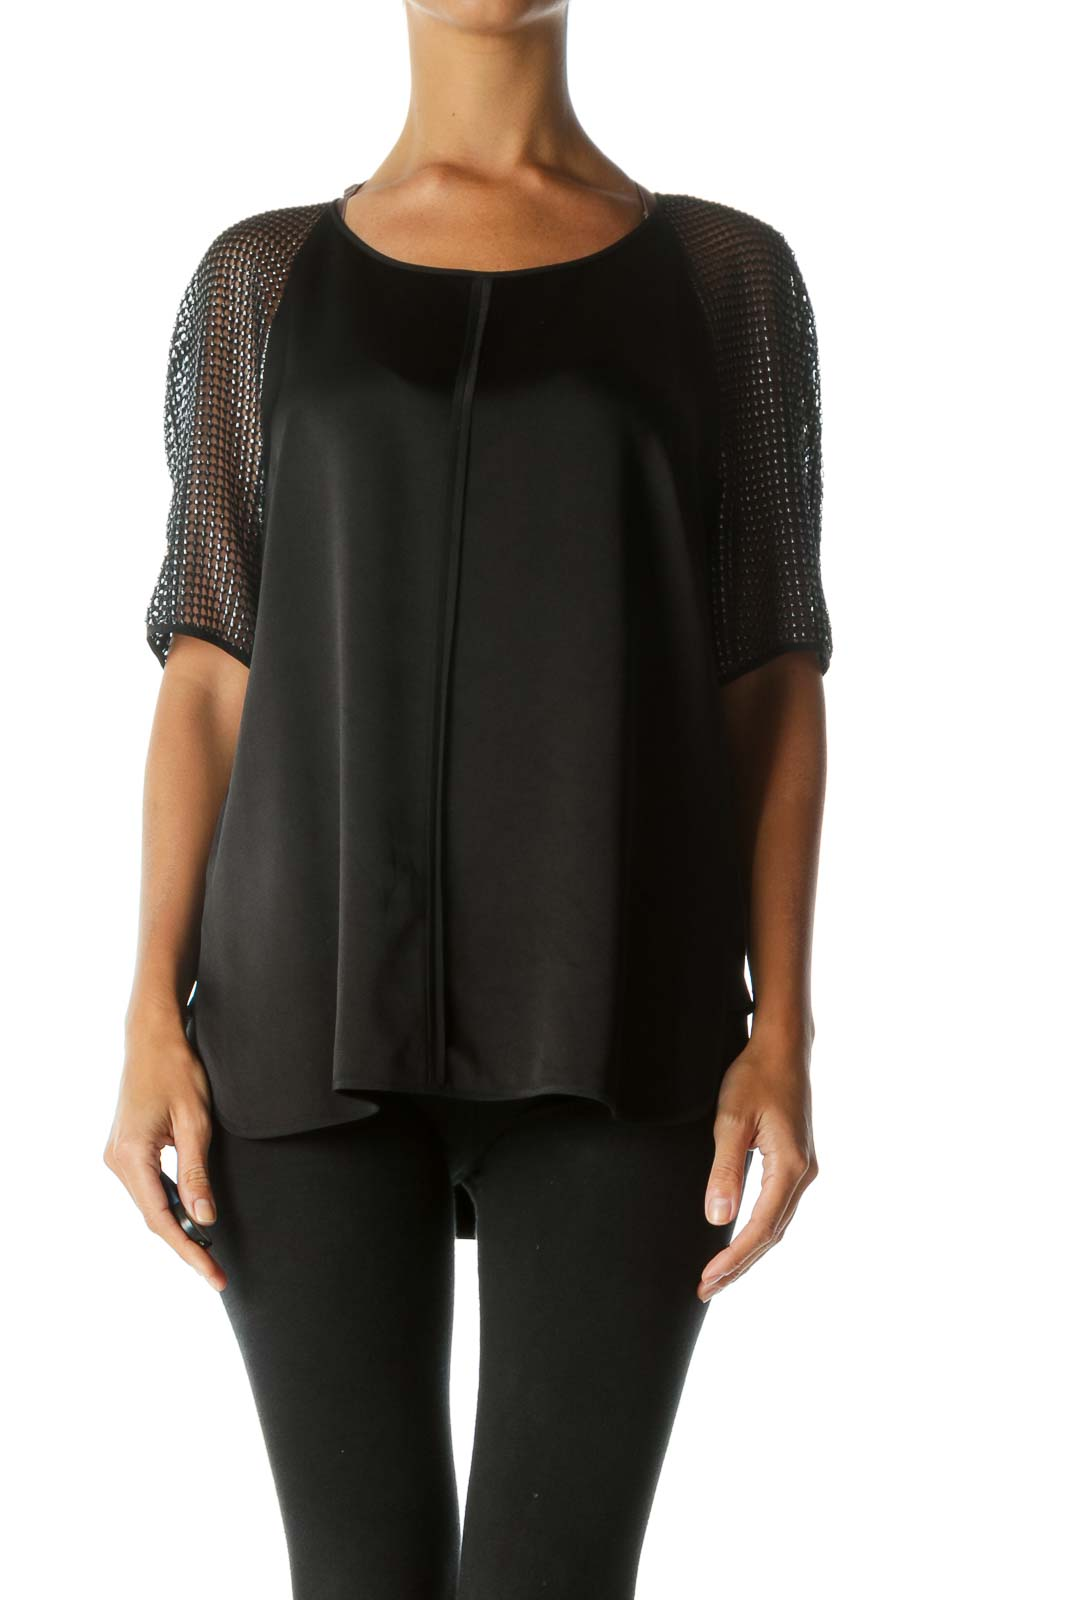 Black Silver See-Through-Short-Sleeves Soft Silk Blend Top Front